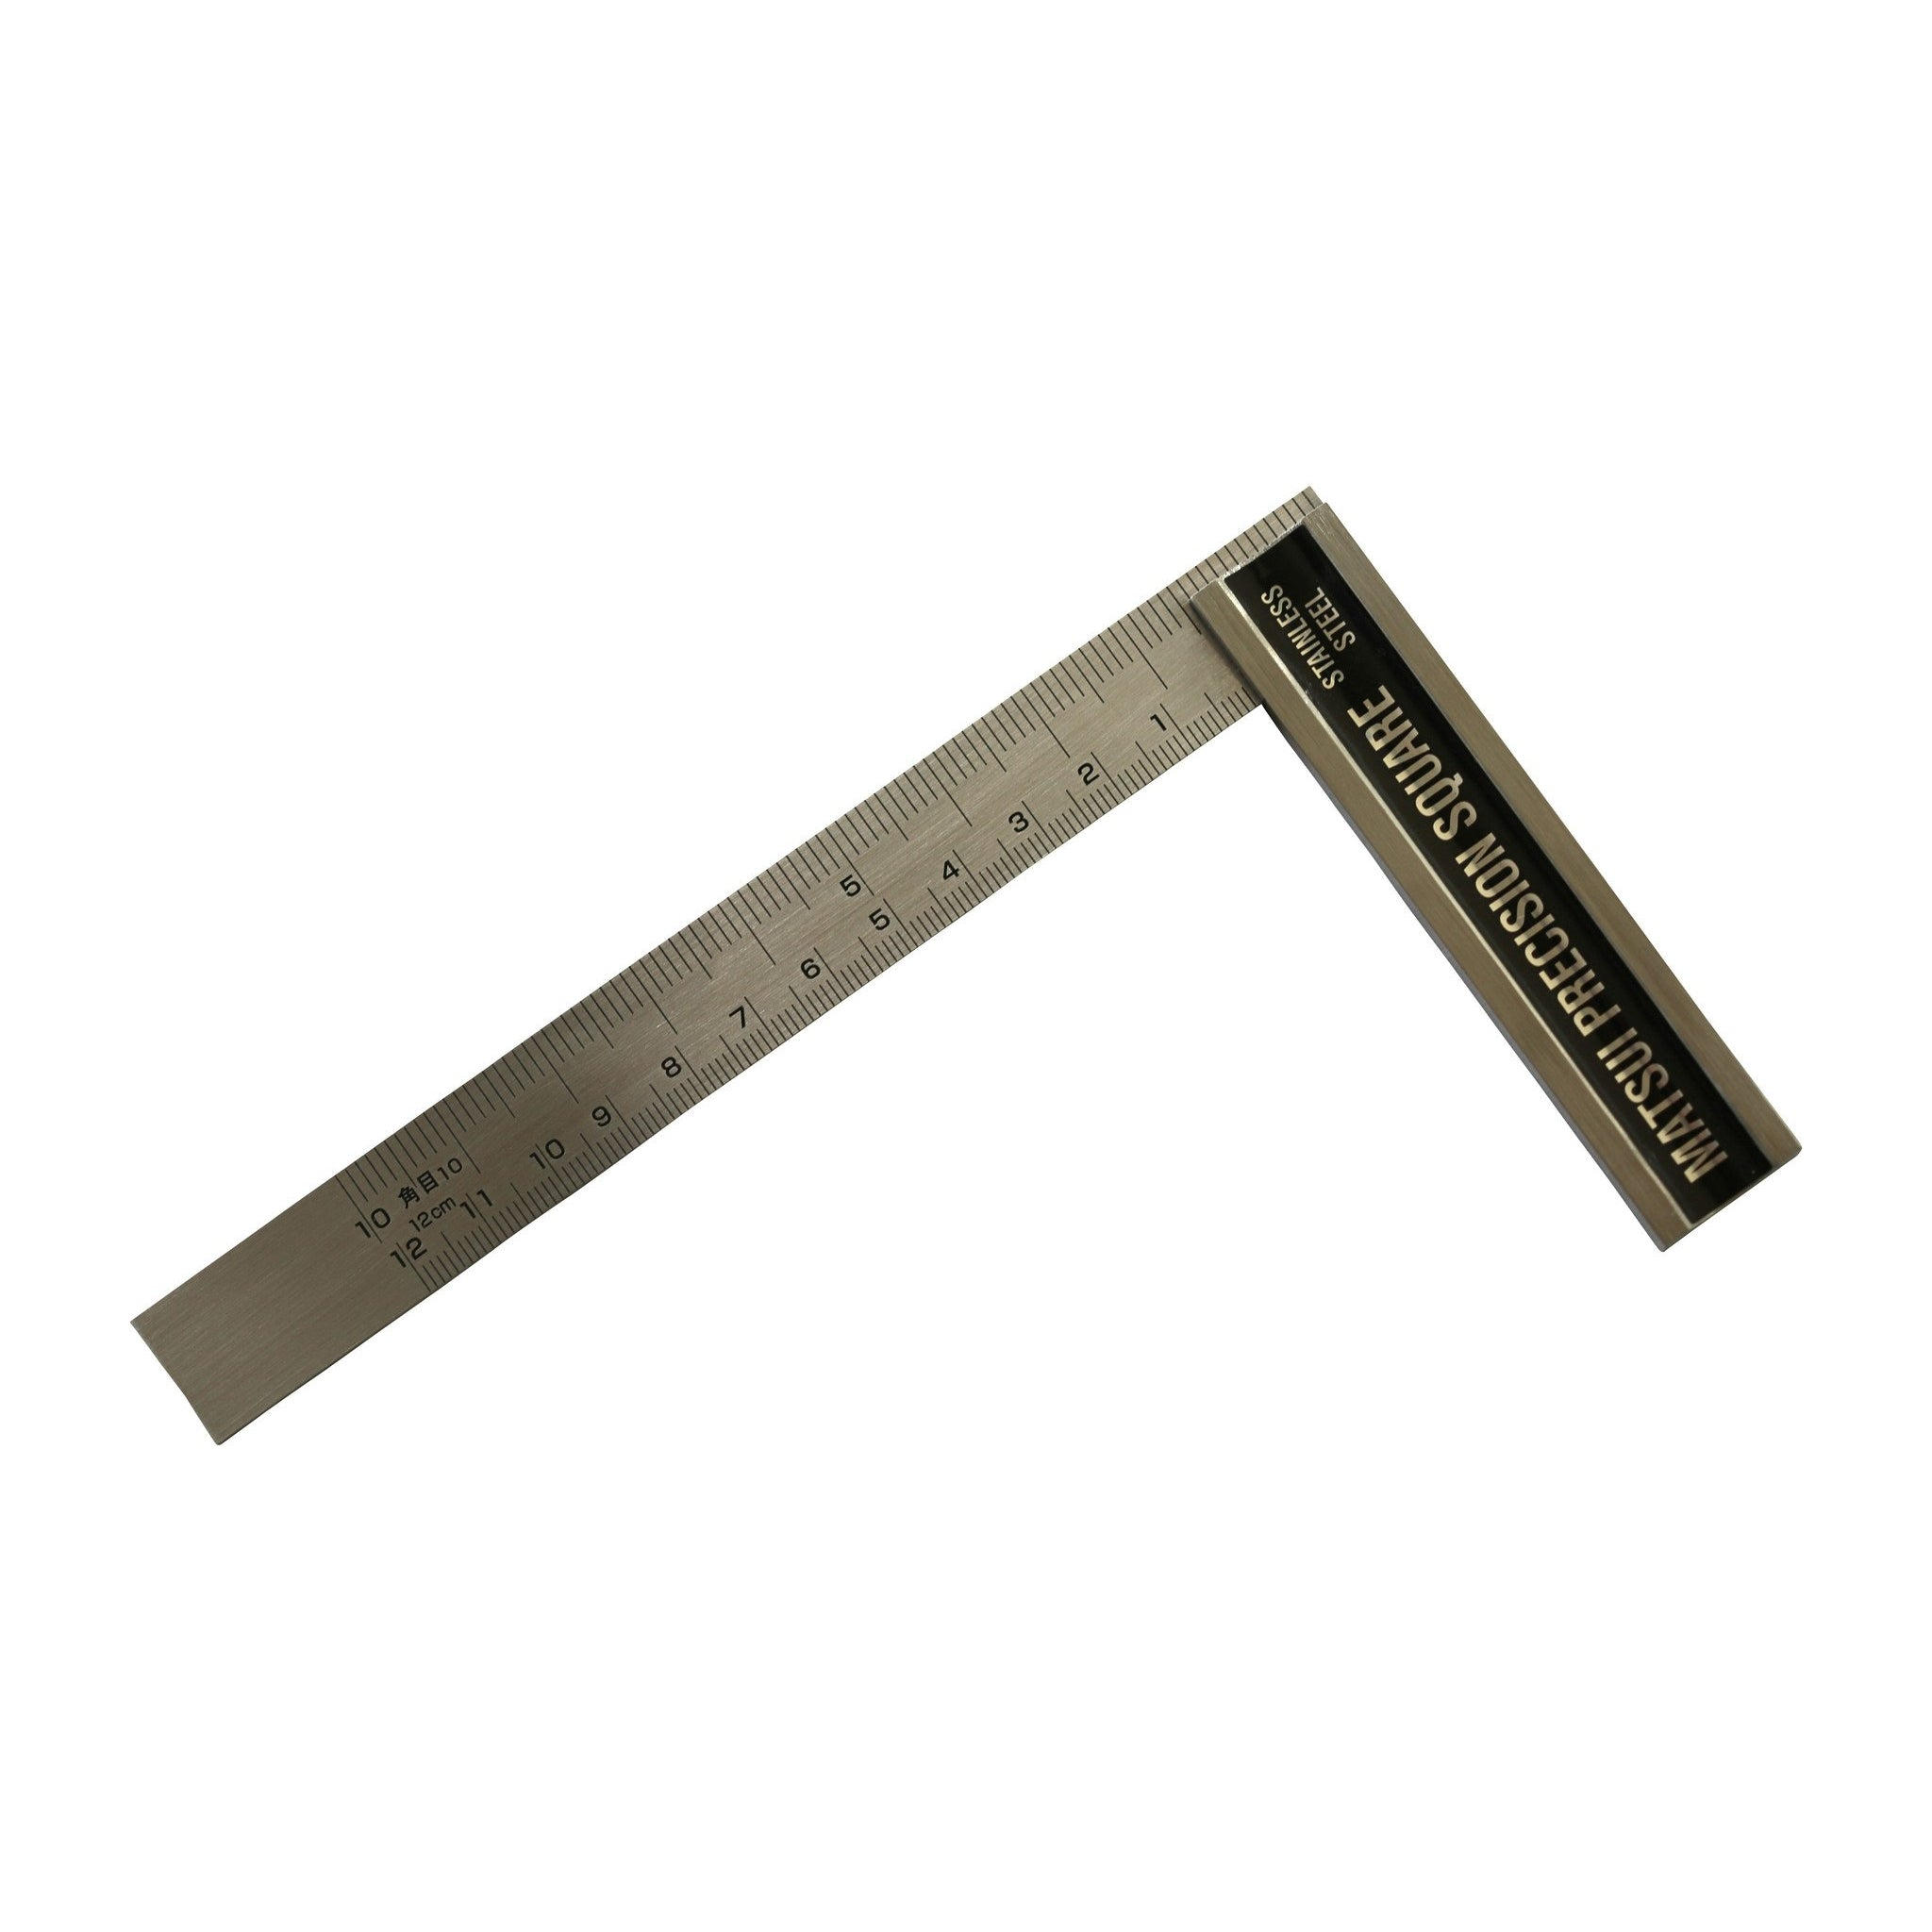 Japanese Precision Square - Matsui 150 x 170mm | Japanese ...